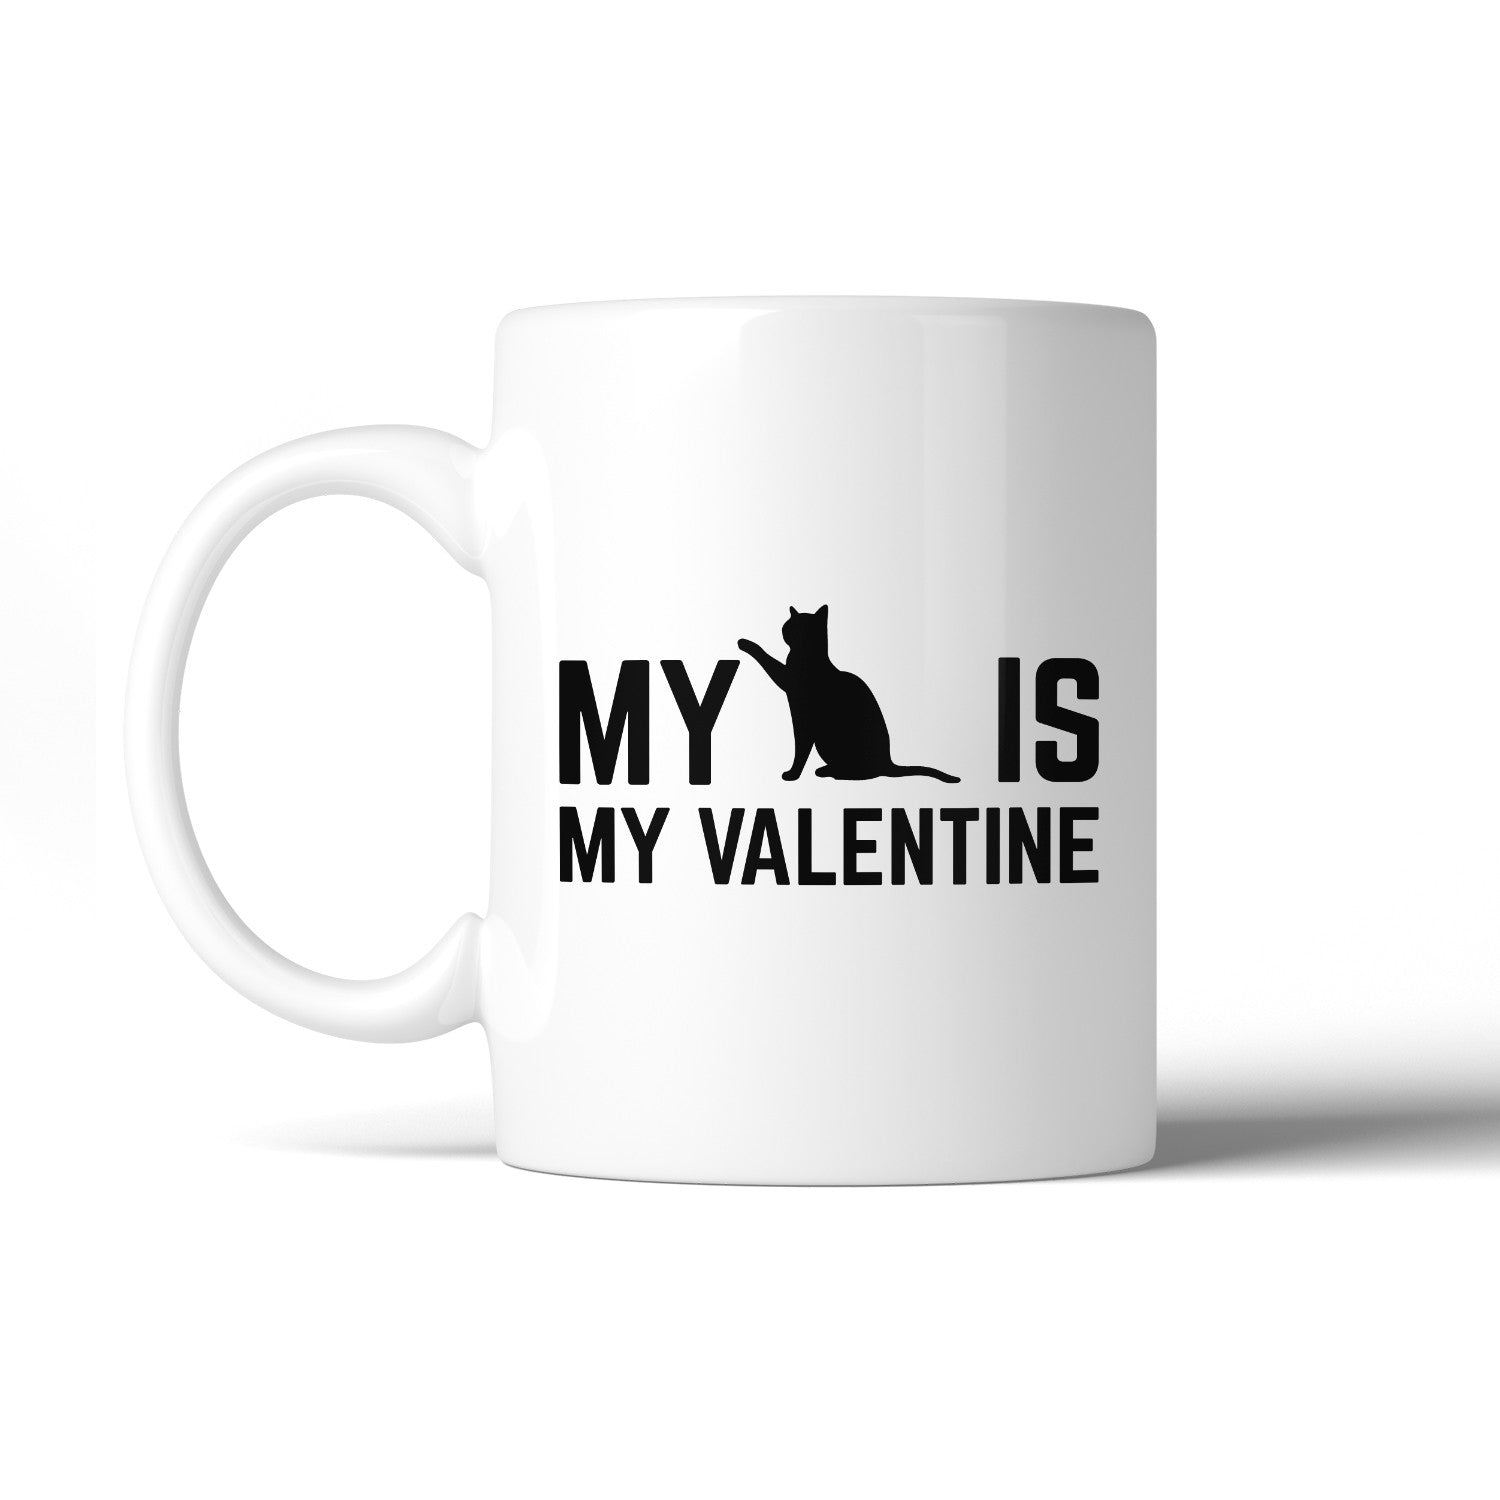 My Cat My Valentine Cute Coffee Mug Funny Gift Ideas For Cat Lovers